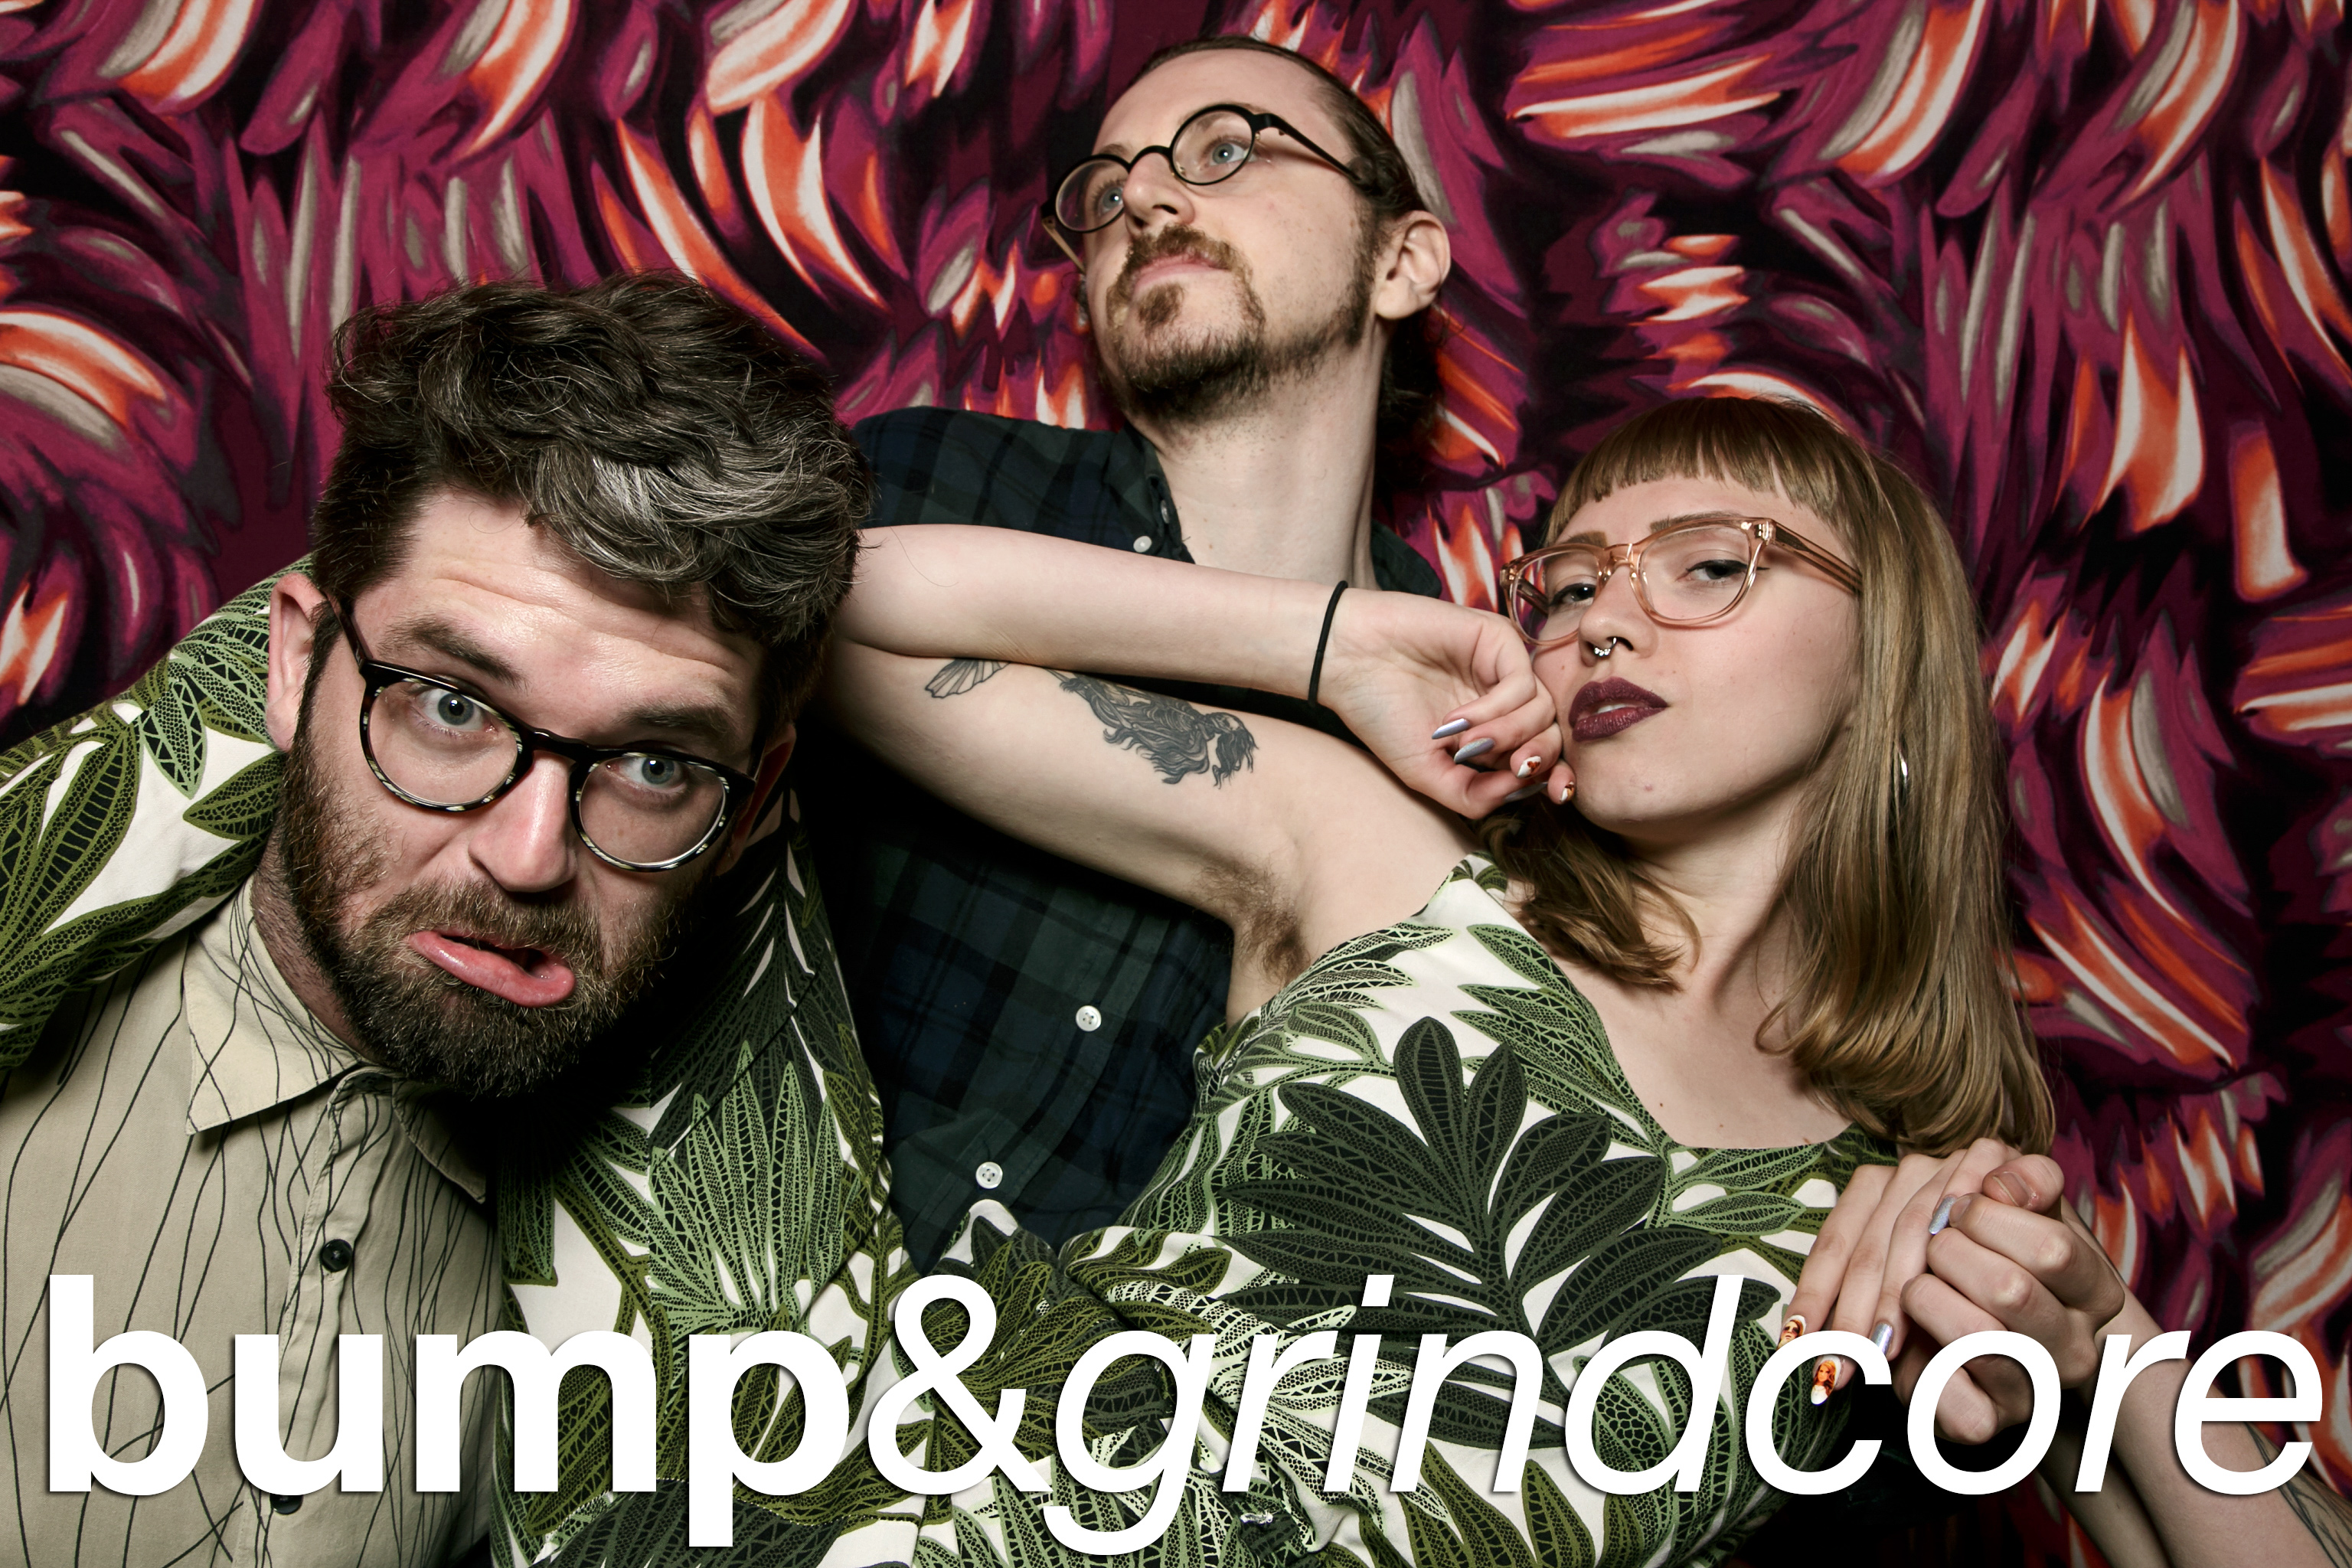 photobooth portraits from bump and grindcore pitchfork fest, july 2016